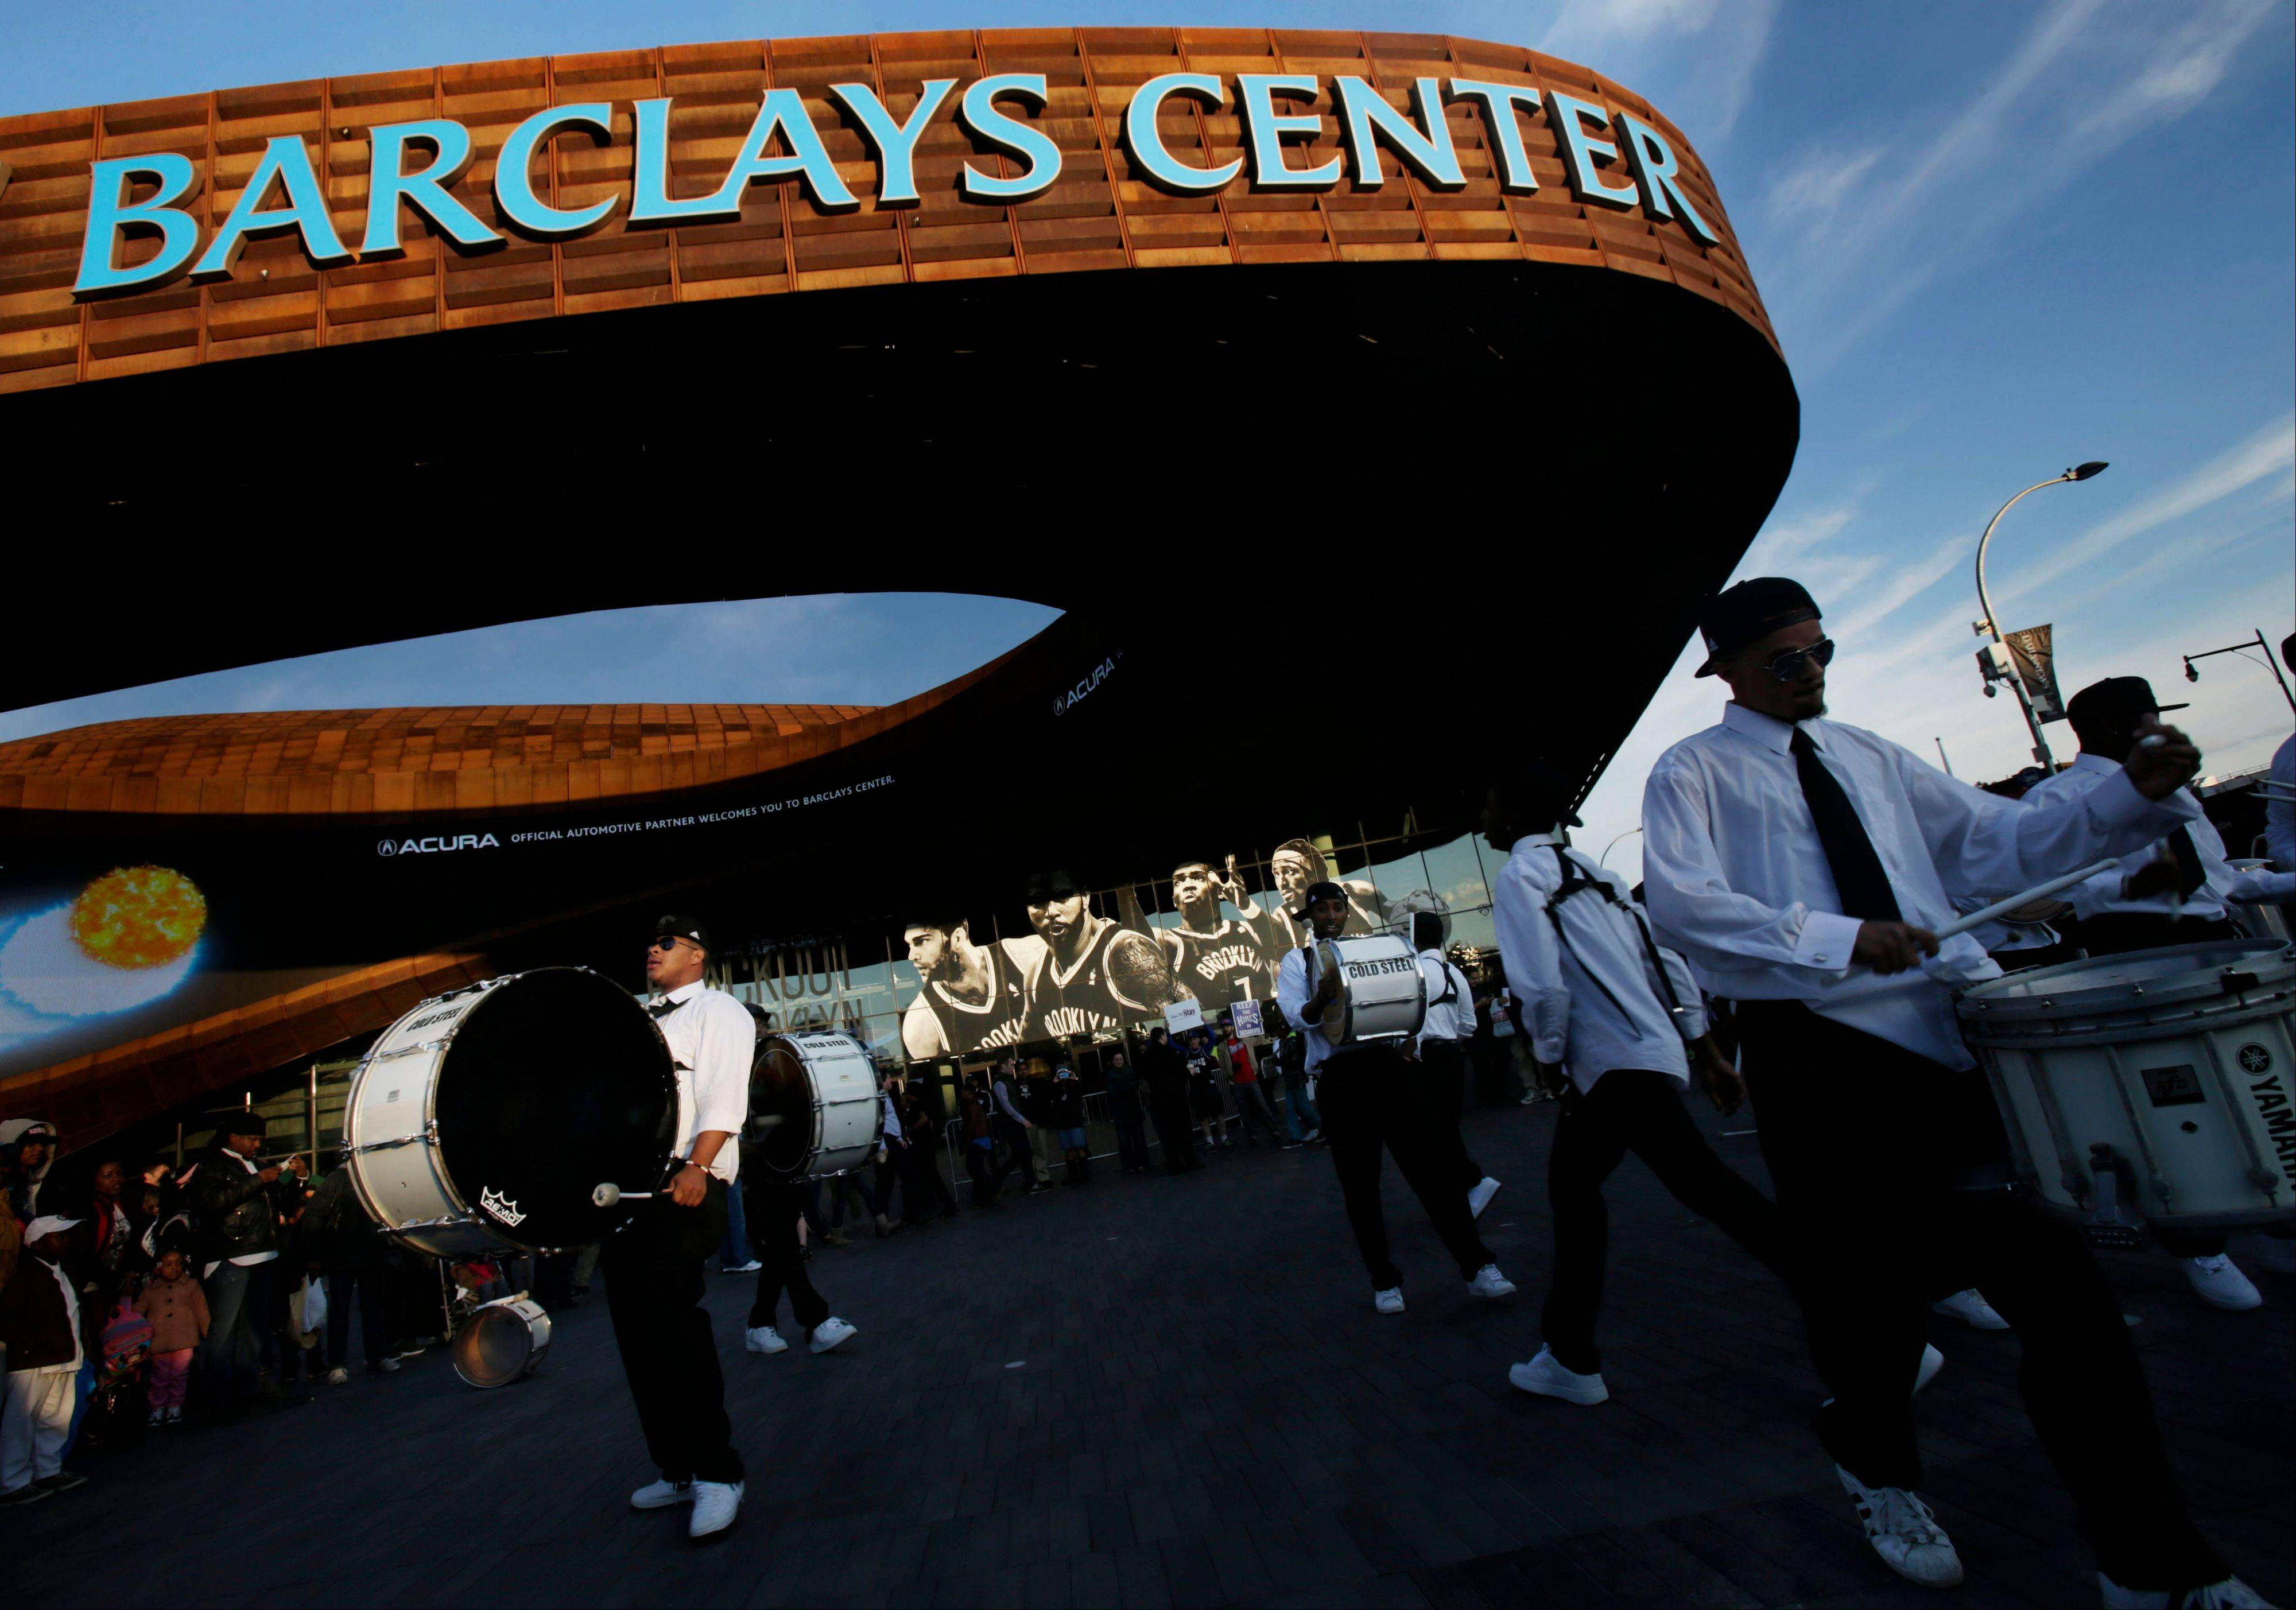 A drum line plays outside of the Barclays Center before the start of Game 1 in the first round of the NBA basketball playoffs between the Chicago Bulls and the Brooklyn Nets Saturday, April 20, 2013 in New York.